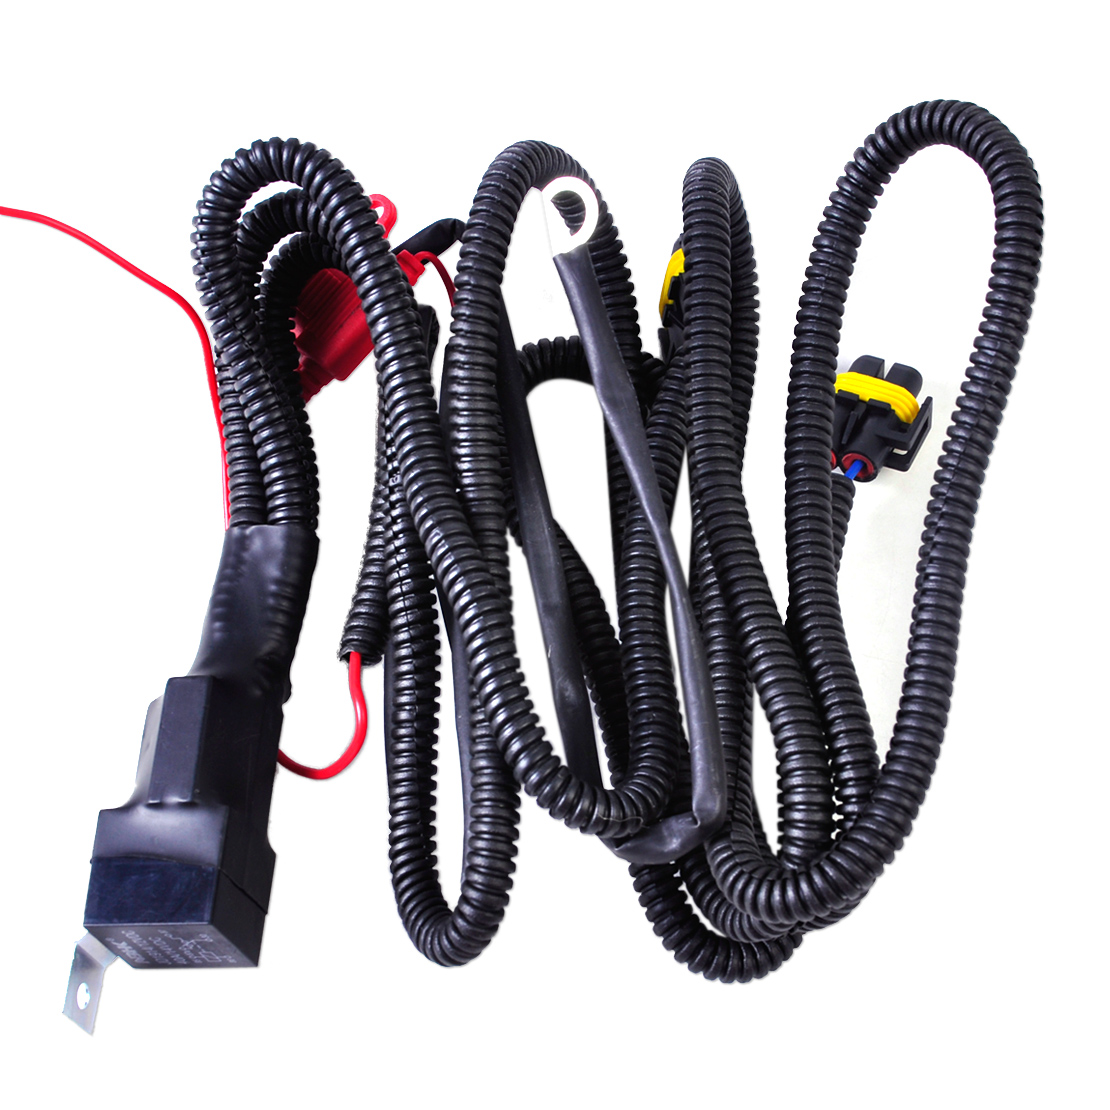 Fusion Fog Light Wiring Harness Guide And Troubleshooting Of Gm H11 Sockets Wire Kits For Ford Switch Ebay